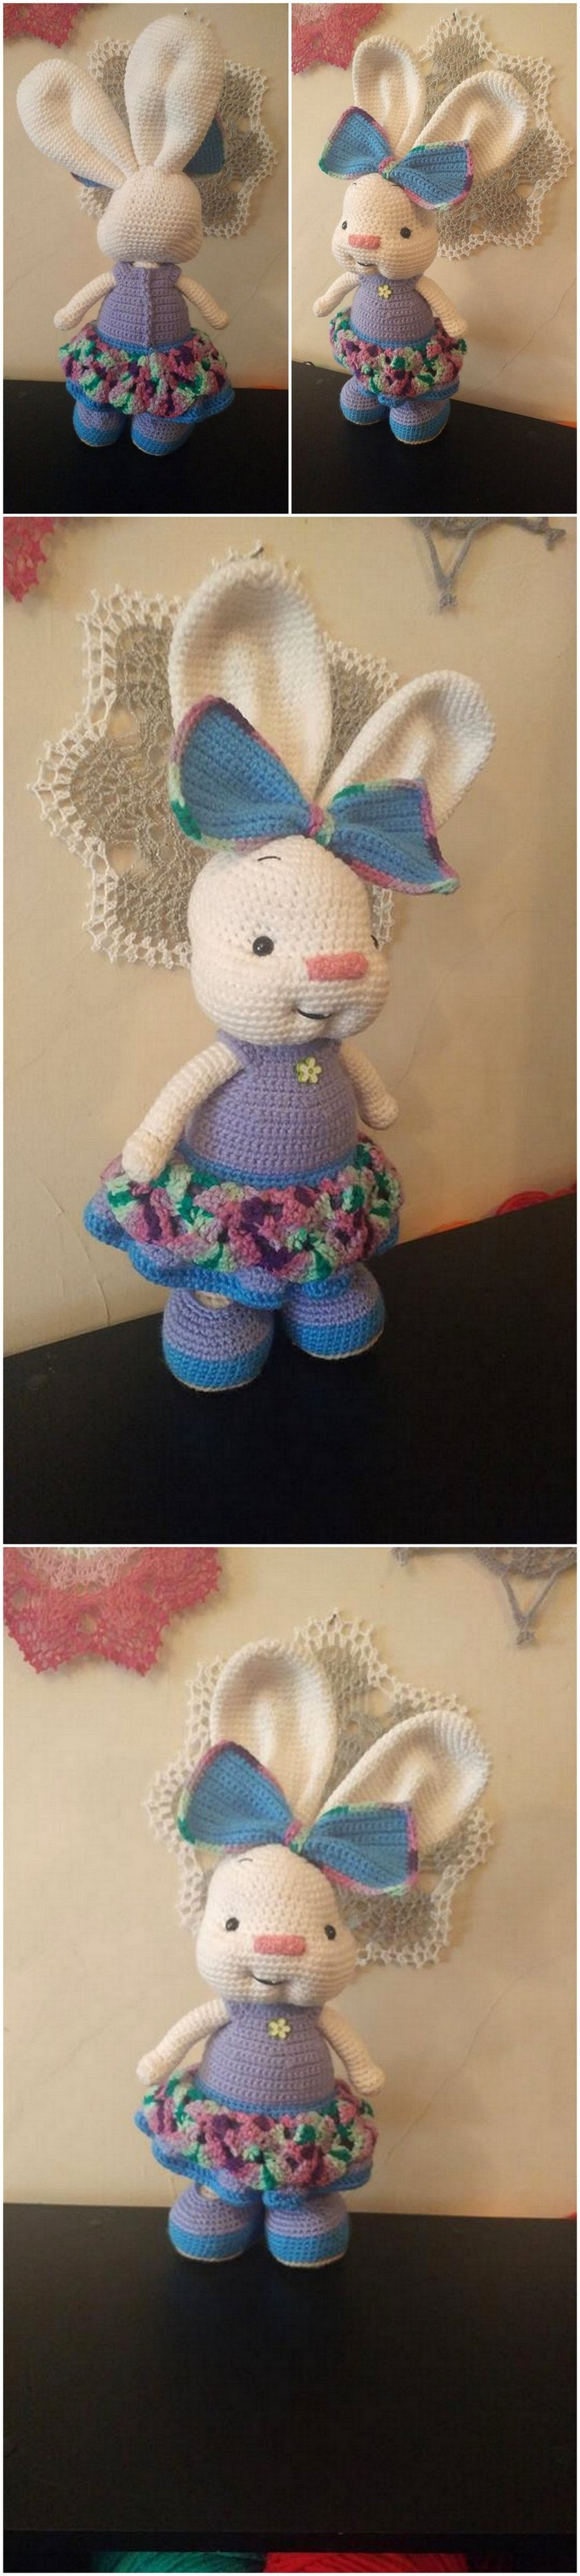 Design – Amigurumi Patterns | 3733x840